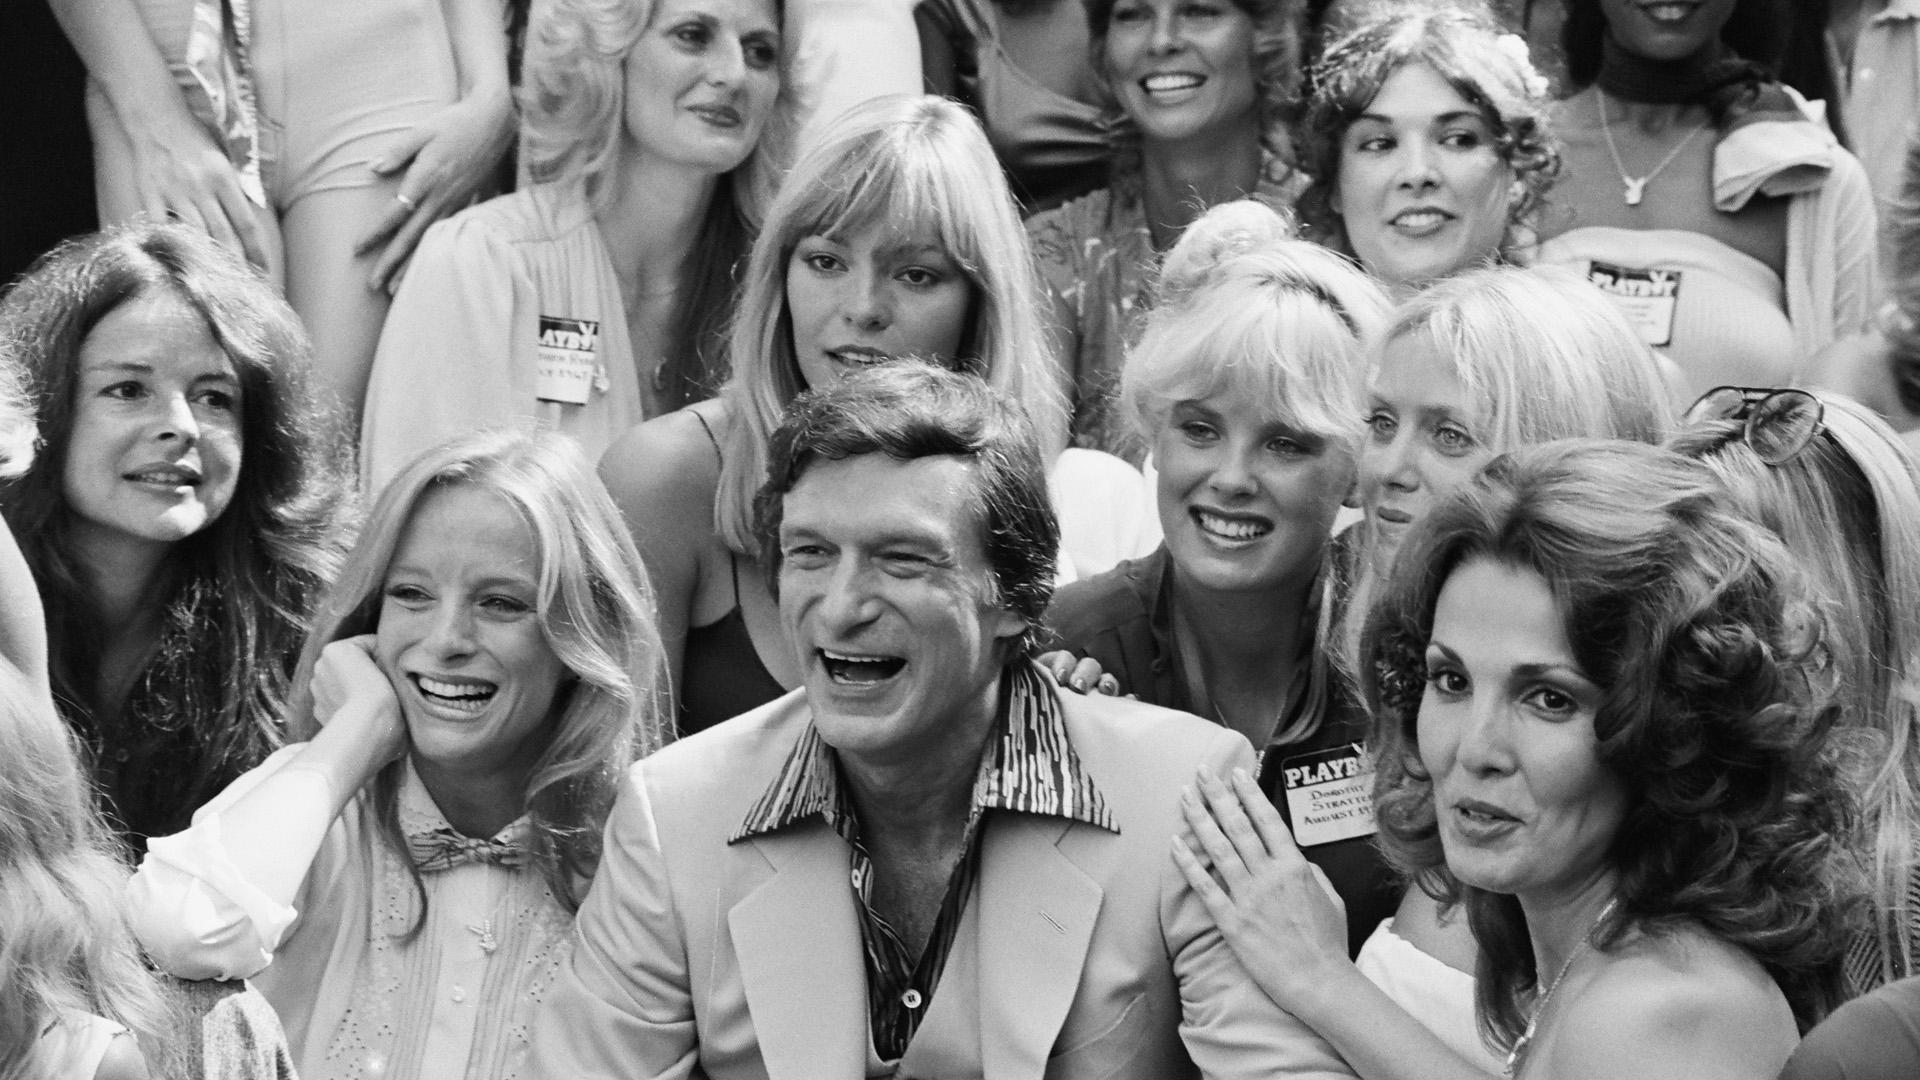 Hugh Hefner, founder of Playboy magazine